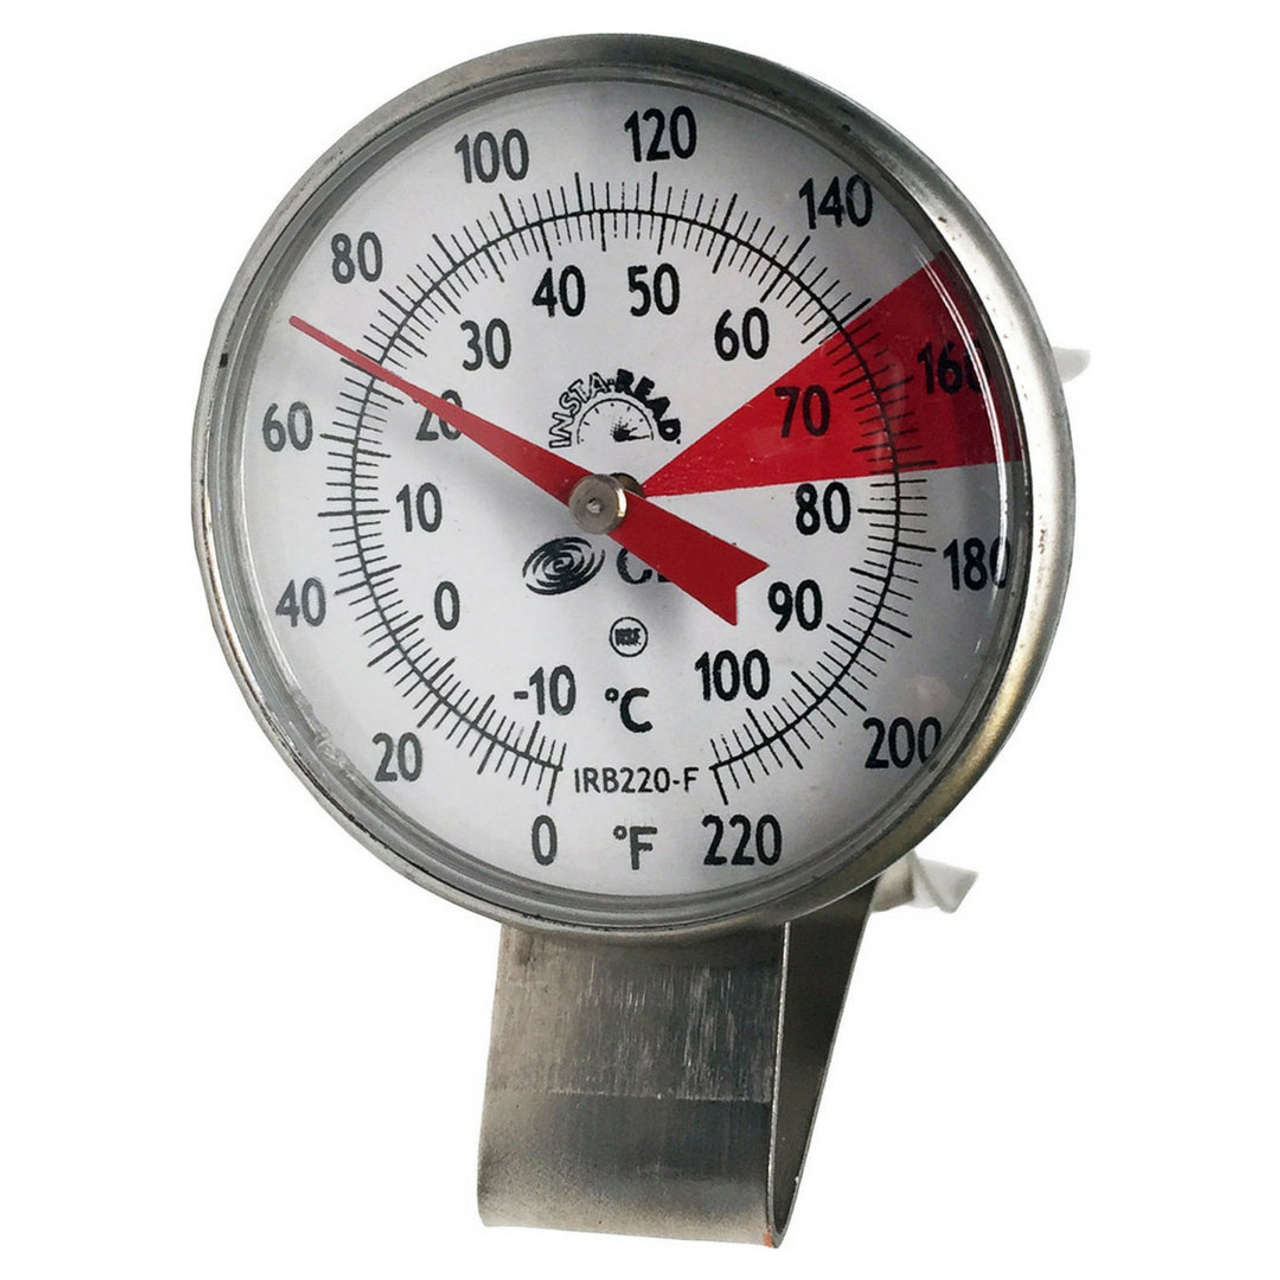 Milk Steaming Thermometer, Large